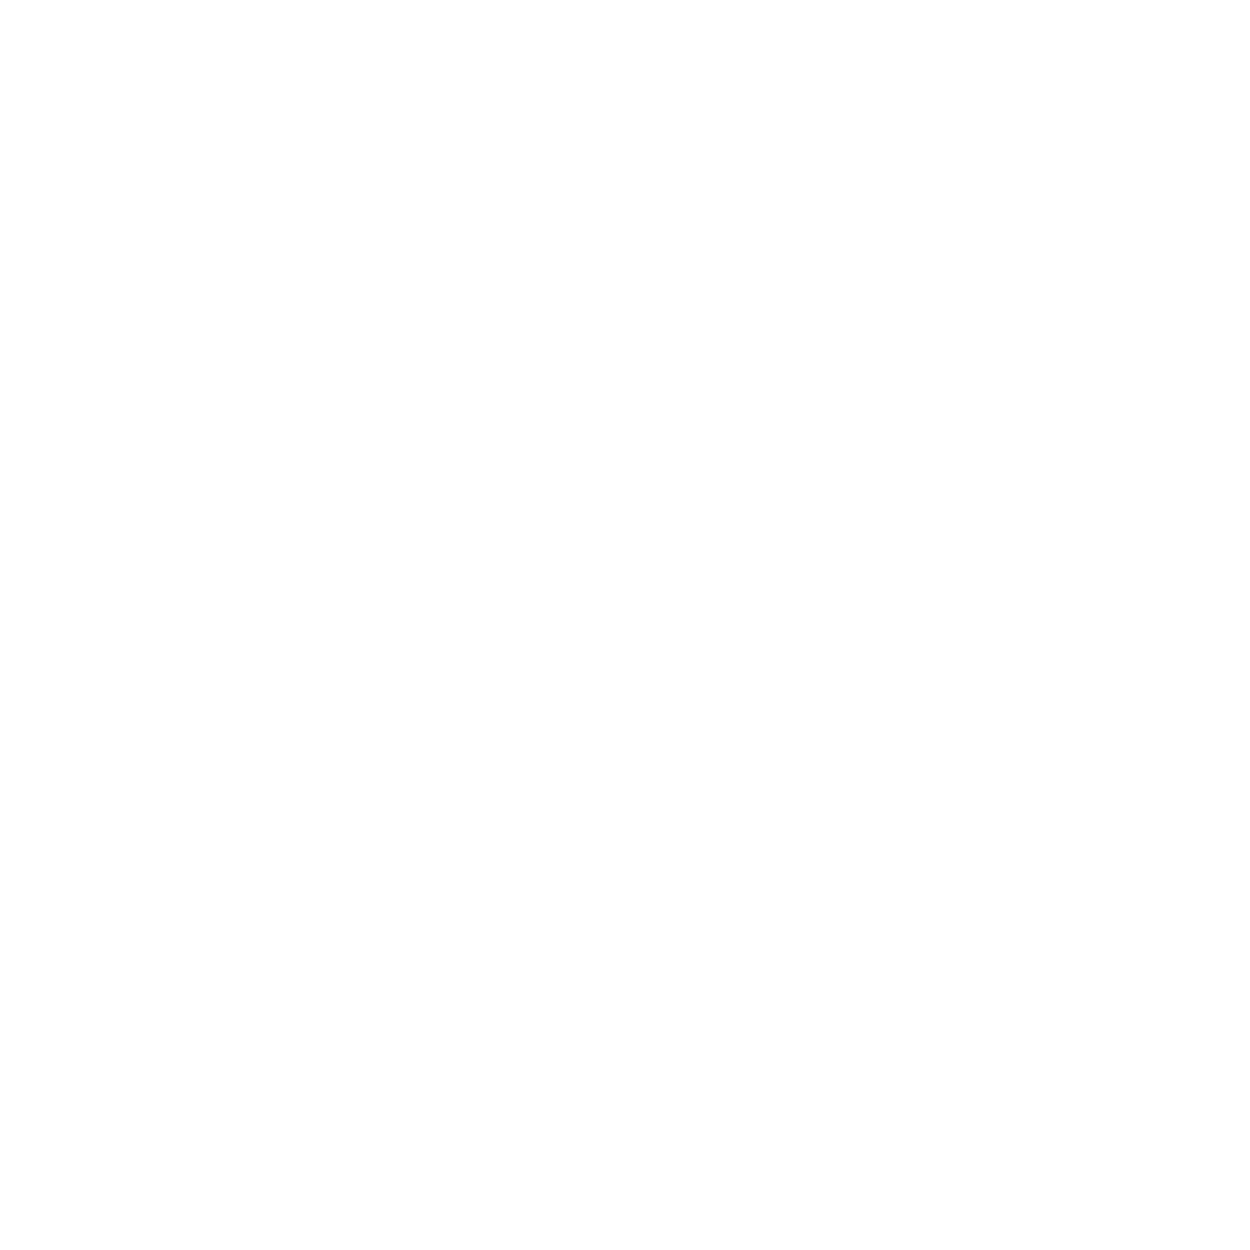 Andrew Ackley